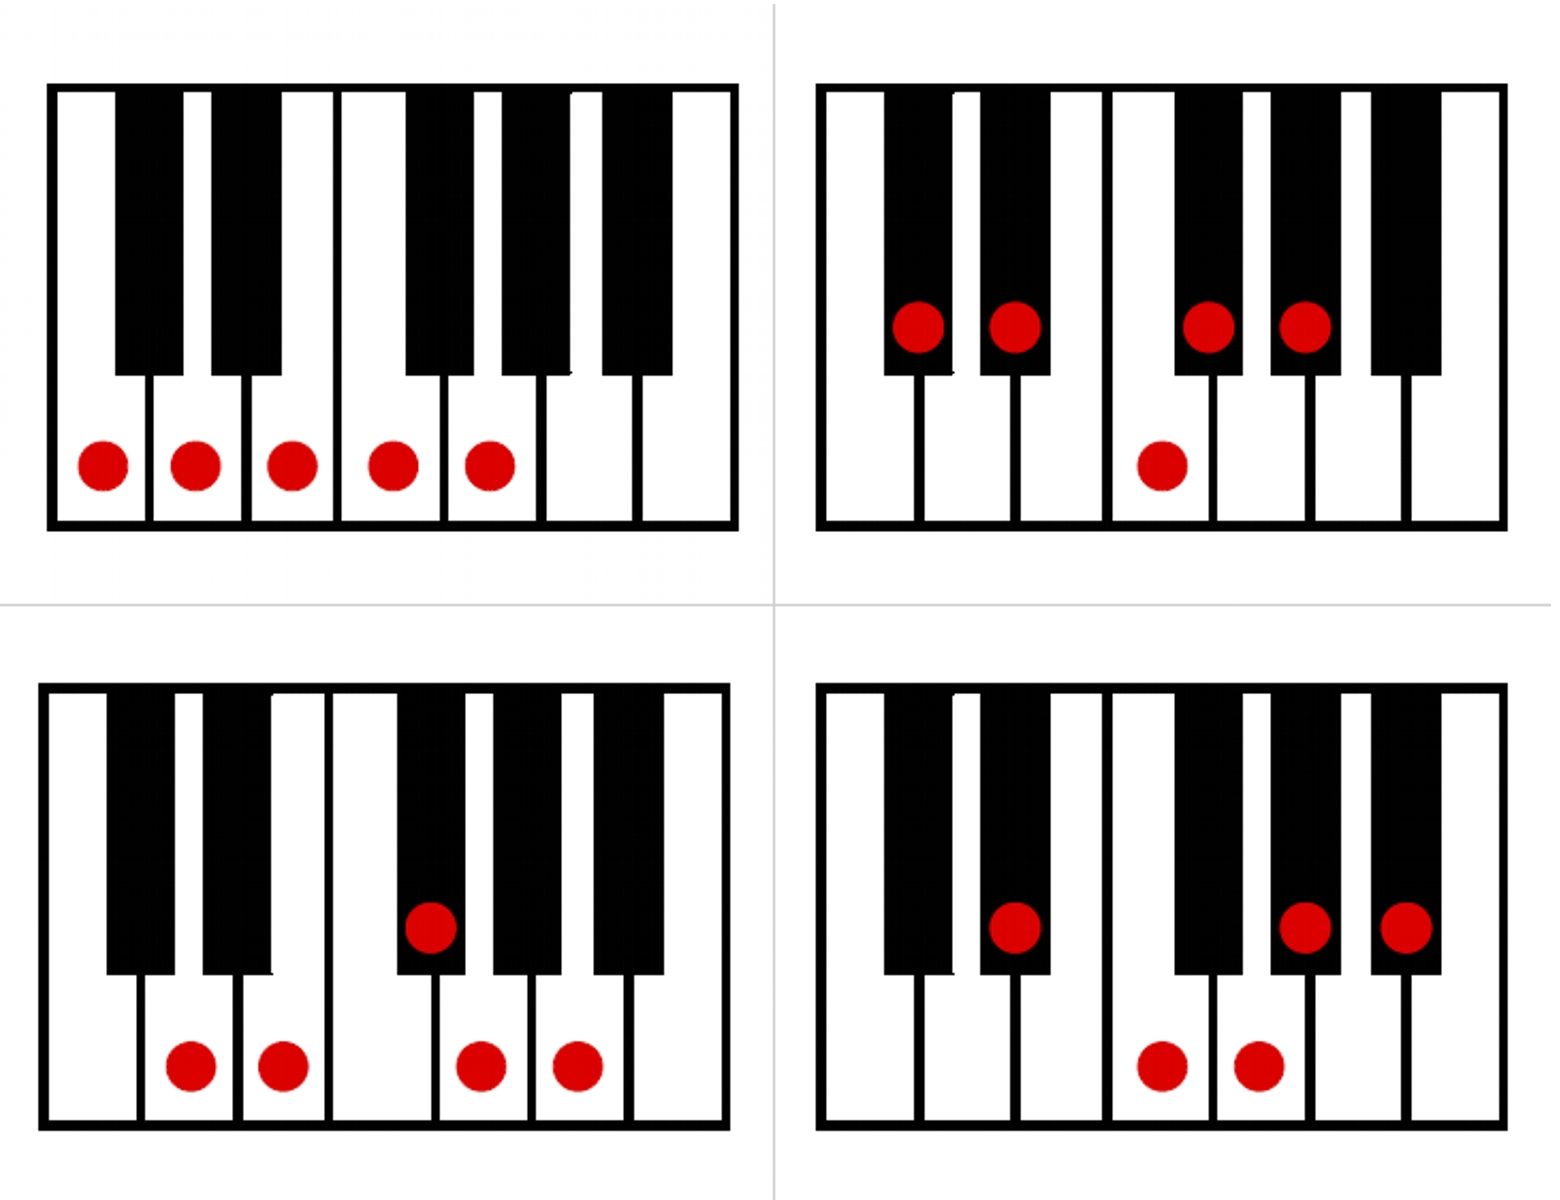 Chords and keys layton music games and resources keyboard pentascales hexwebz Image collections